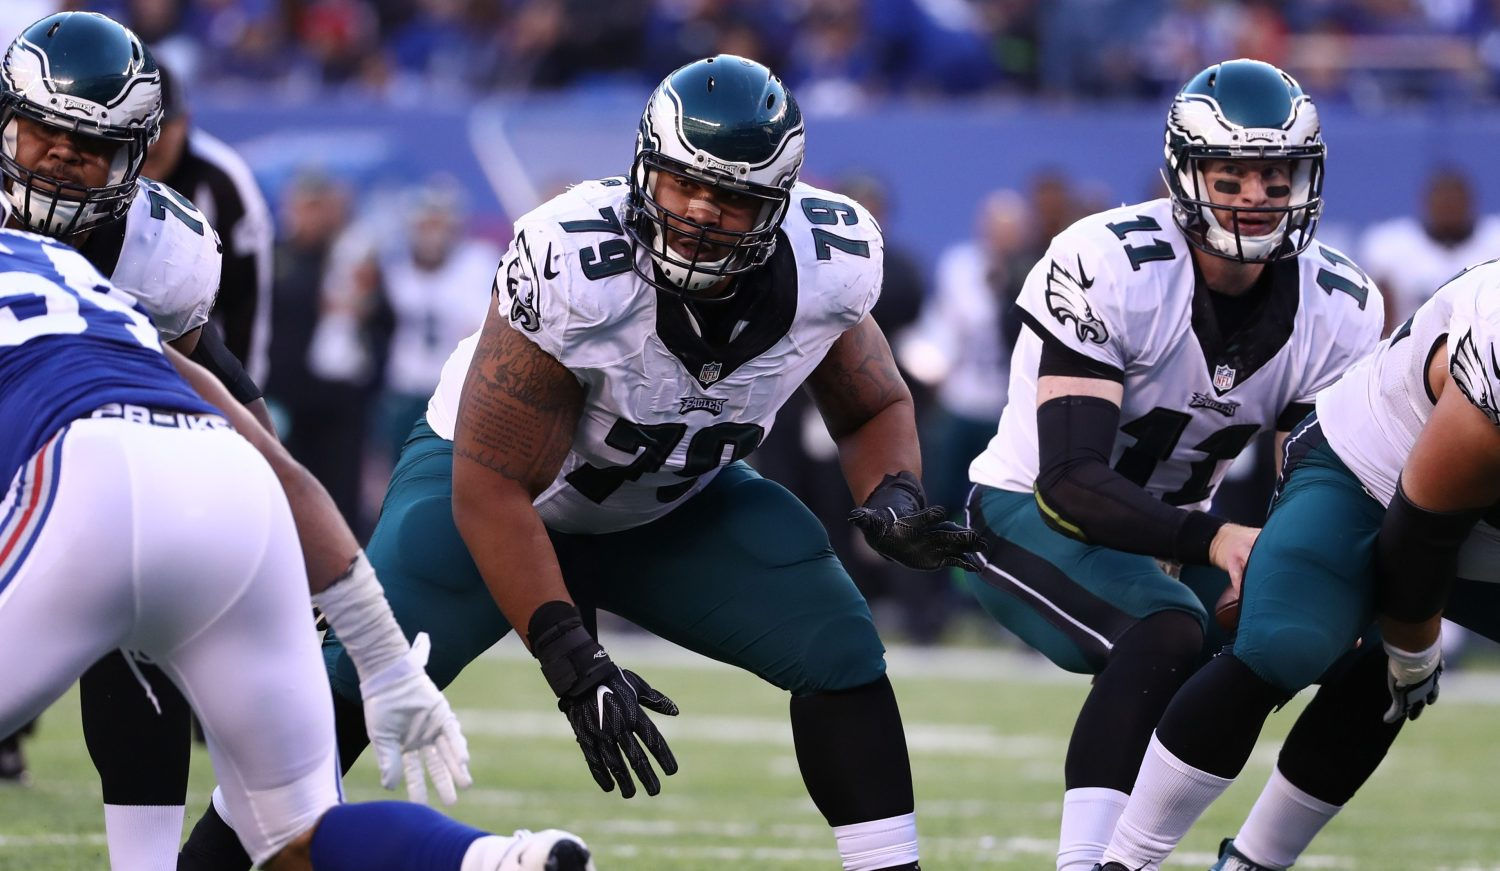 Eagles Sign Brandon Brooks To Reported 4-Year, $54 Million Extension, Making Him Highest-Paid Guard In League